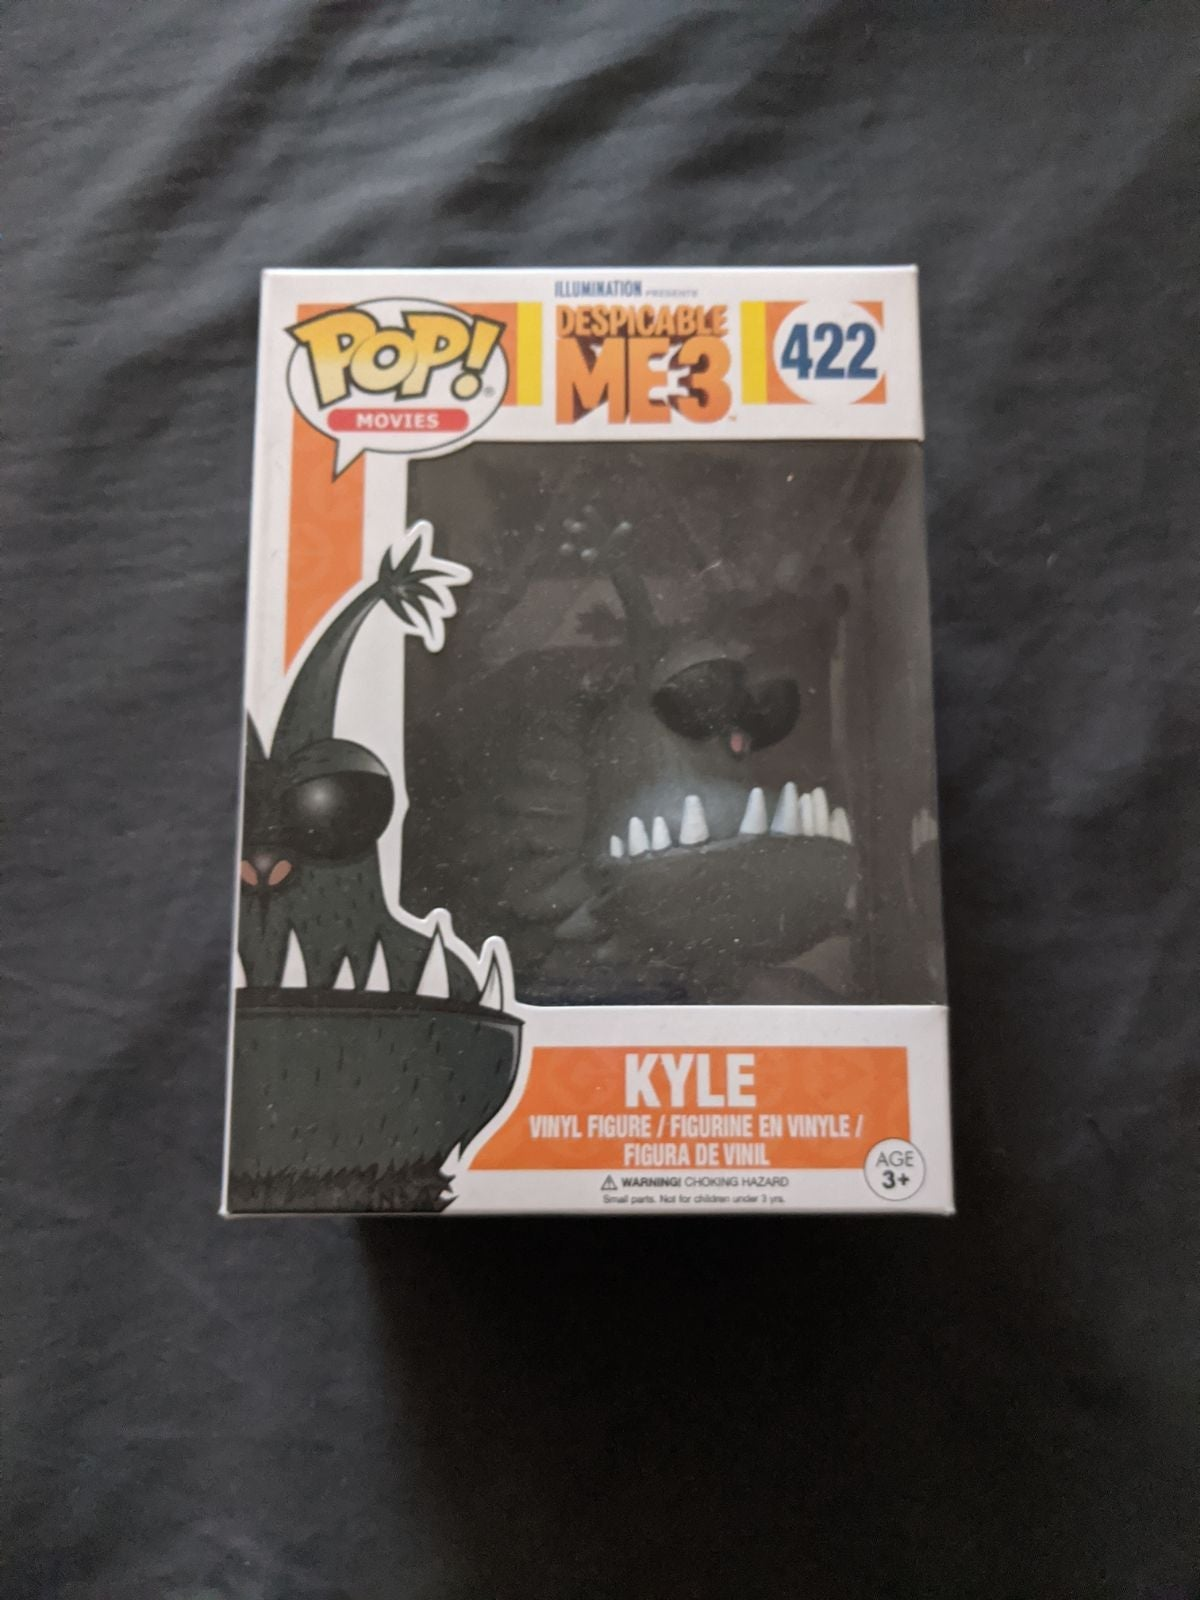 Funko Pop! Despicable Me 3 Kyle Figure